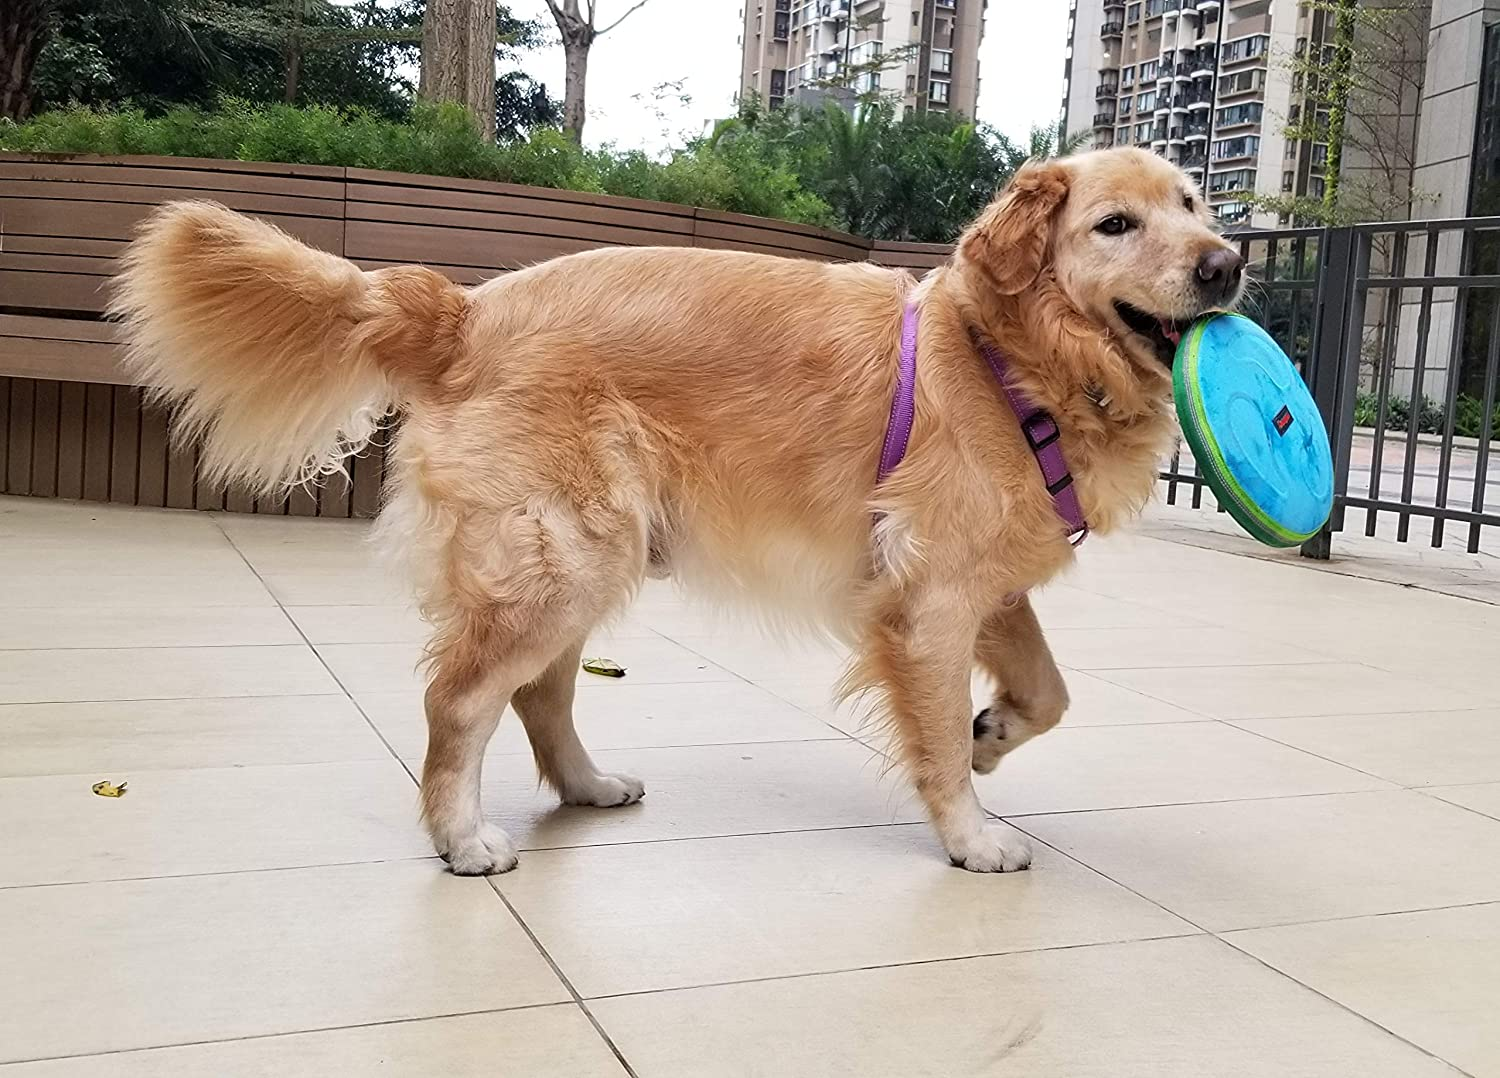 Ring Toss /& 68oz Collapsible Travel Water Bowl Peanuts 3 Piece Flying Disc Chewproof Durable Weatherproof Mr